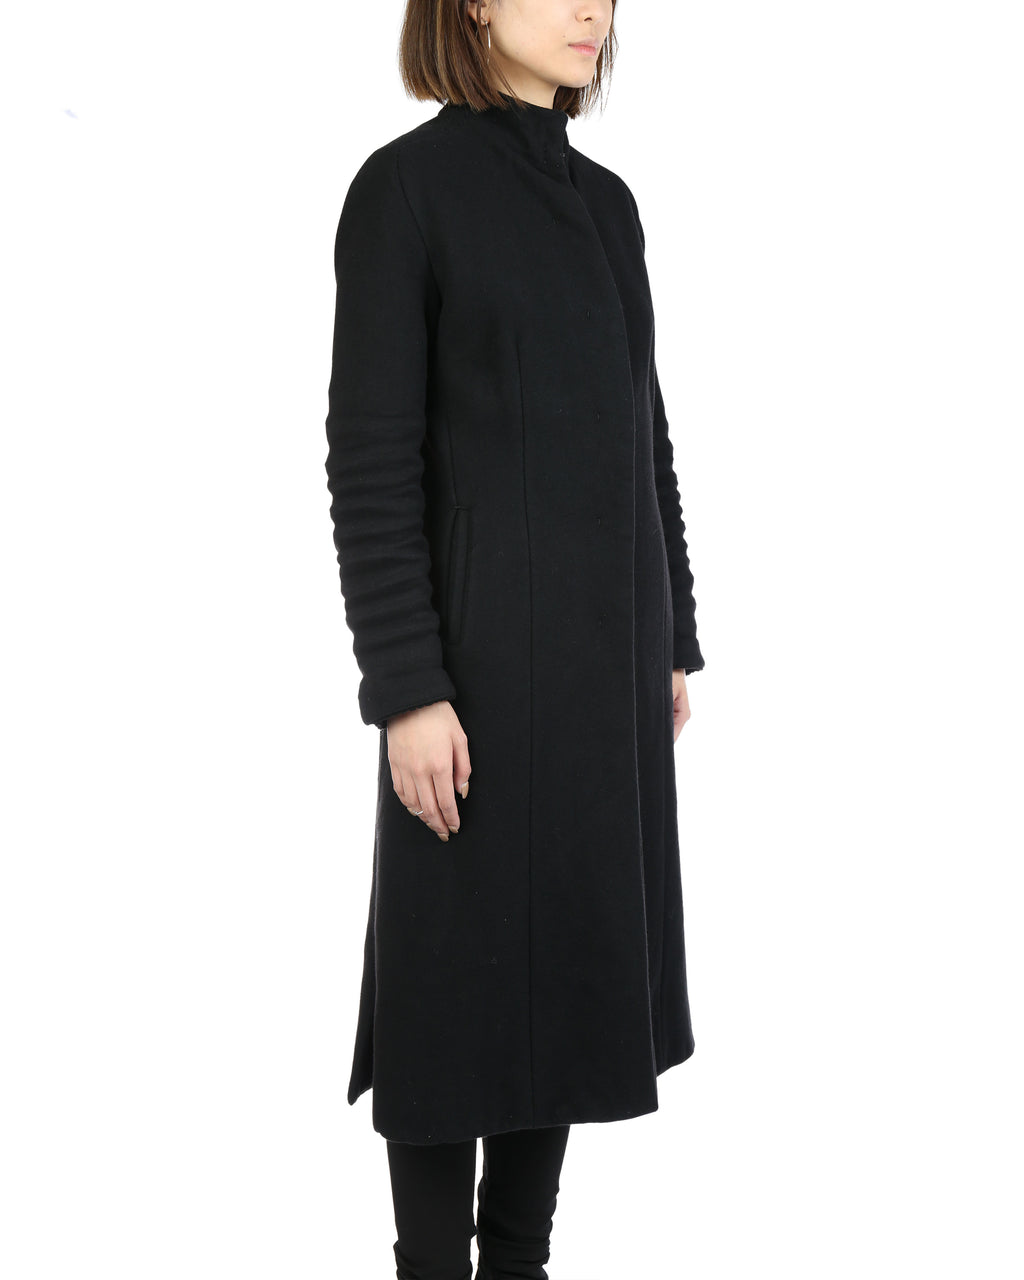 LAYER-0 WOMEN WOOL ANGORA BLEND TRENCH COAT